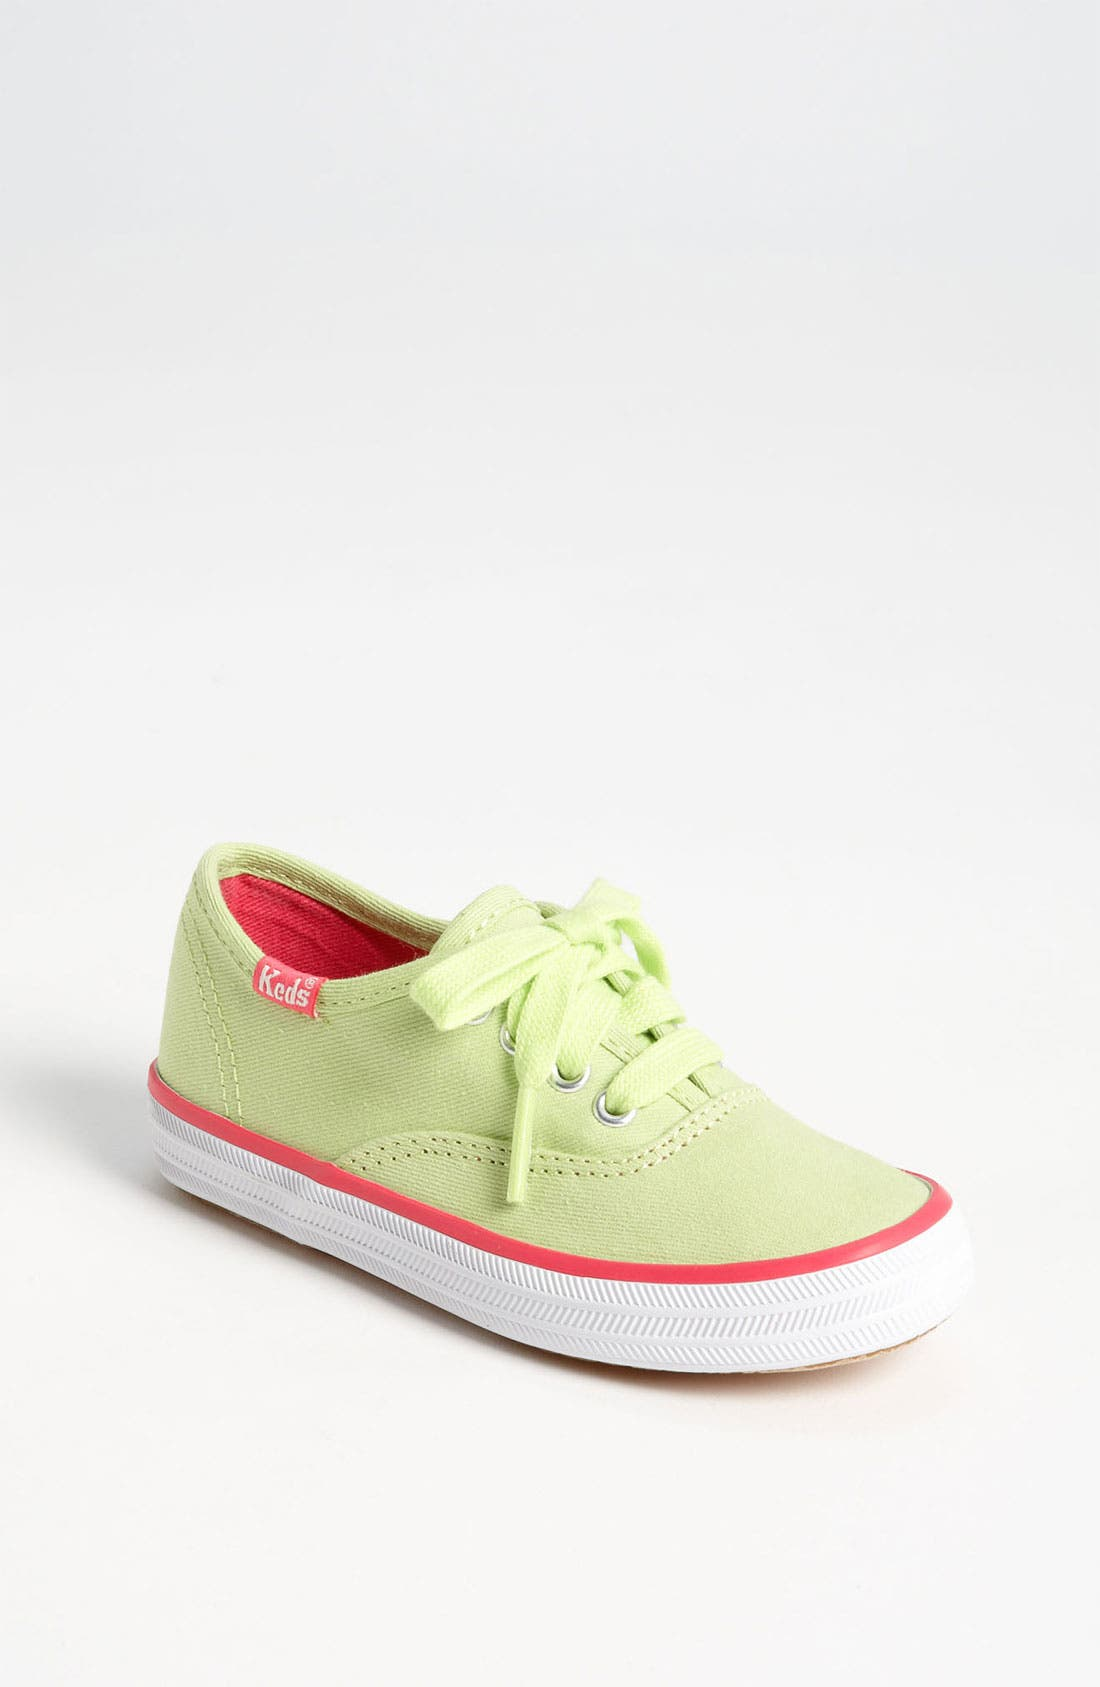 Alternate Image 1 Selected - Keds® 'Original Champion - CVO' Sneaker (Toddler, Little Kid & Big Kid)